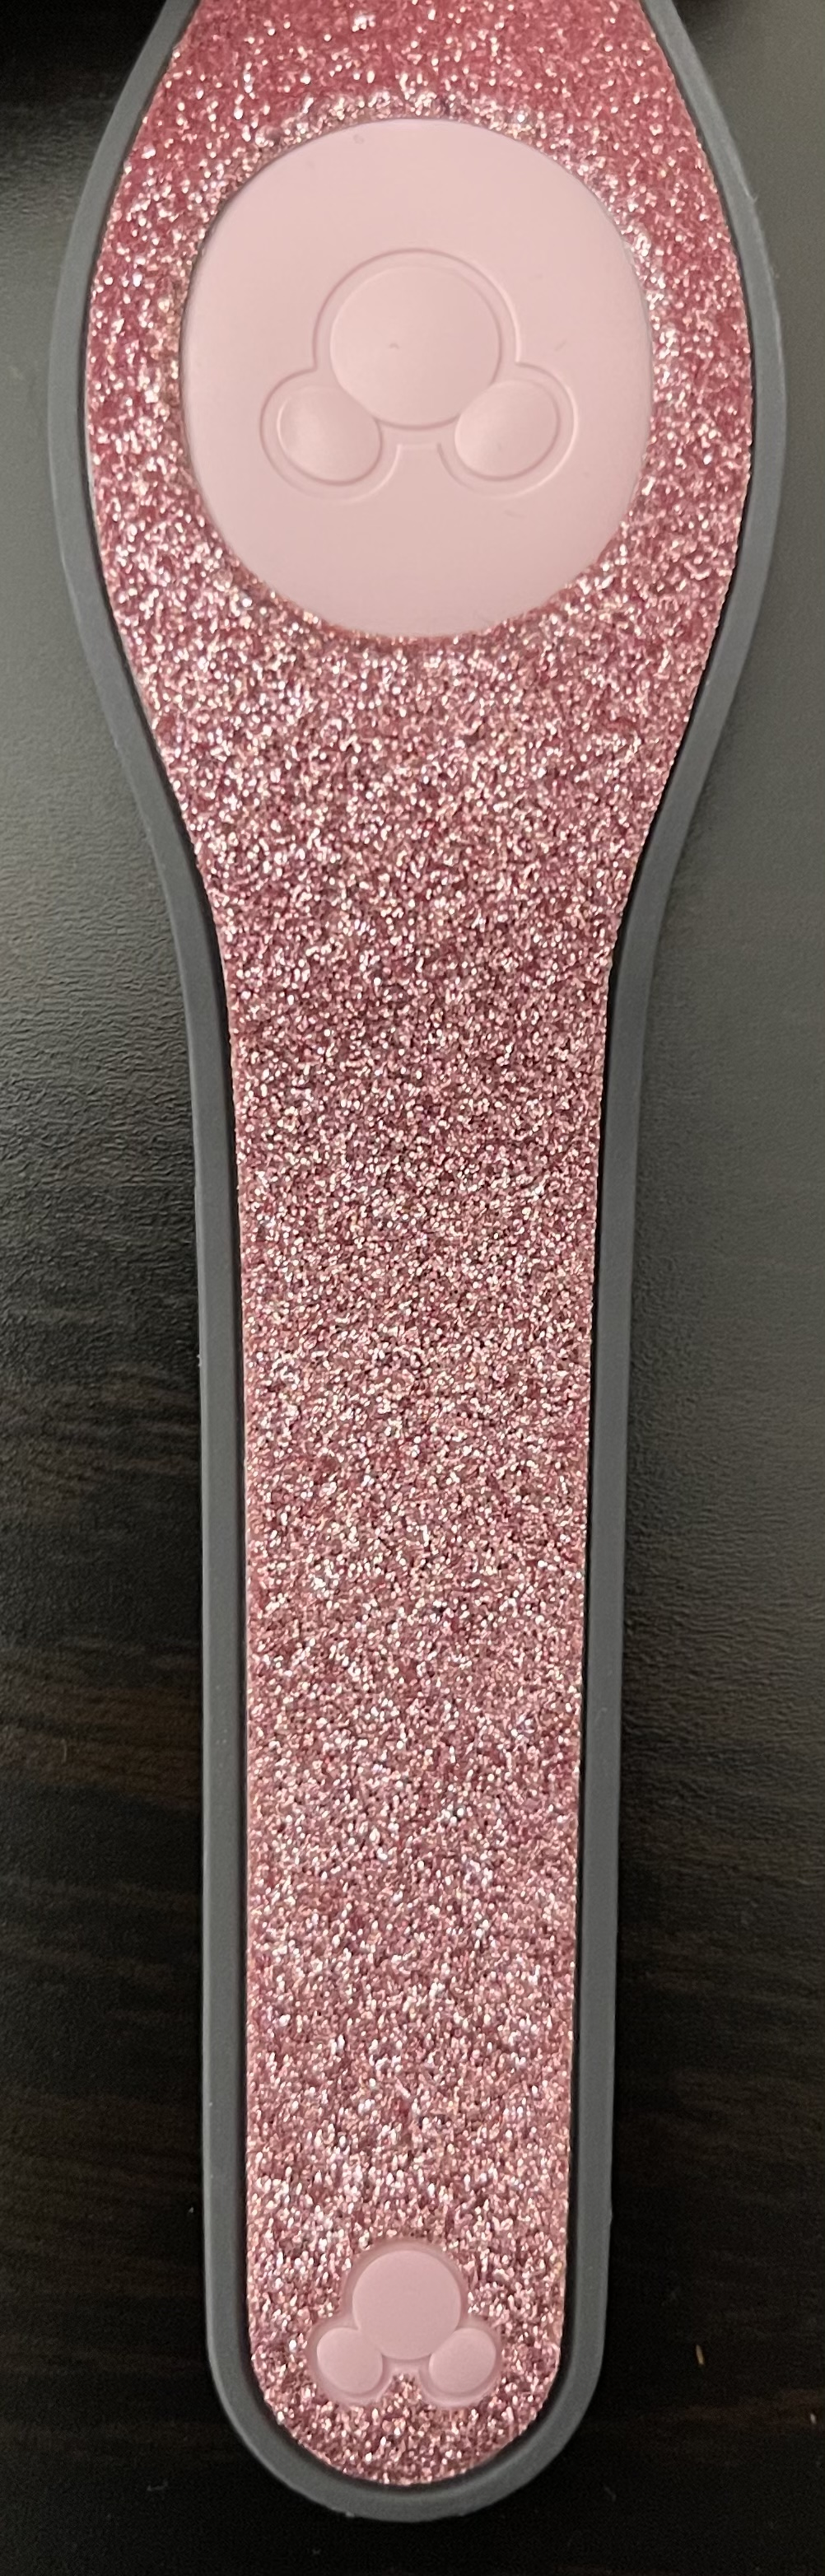 Glitter Pink Open Edition MagicBand is now out